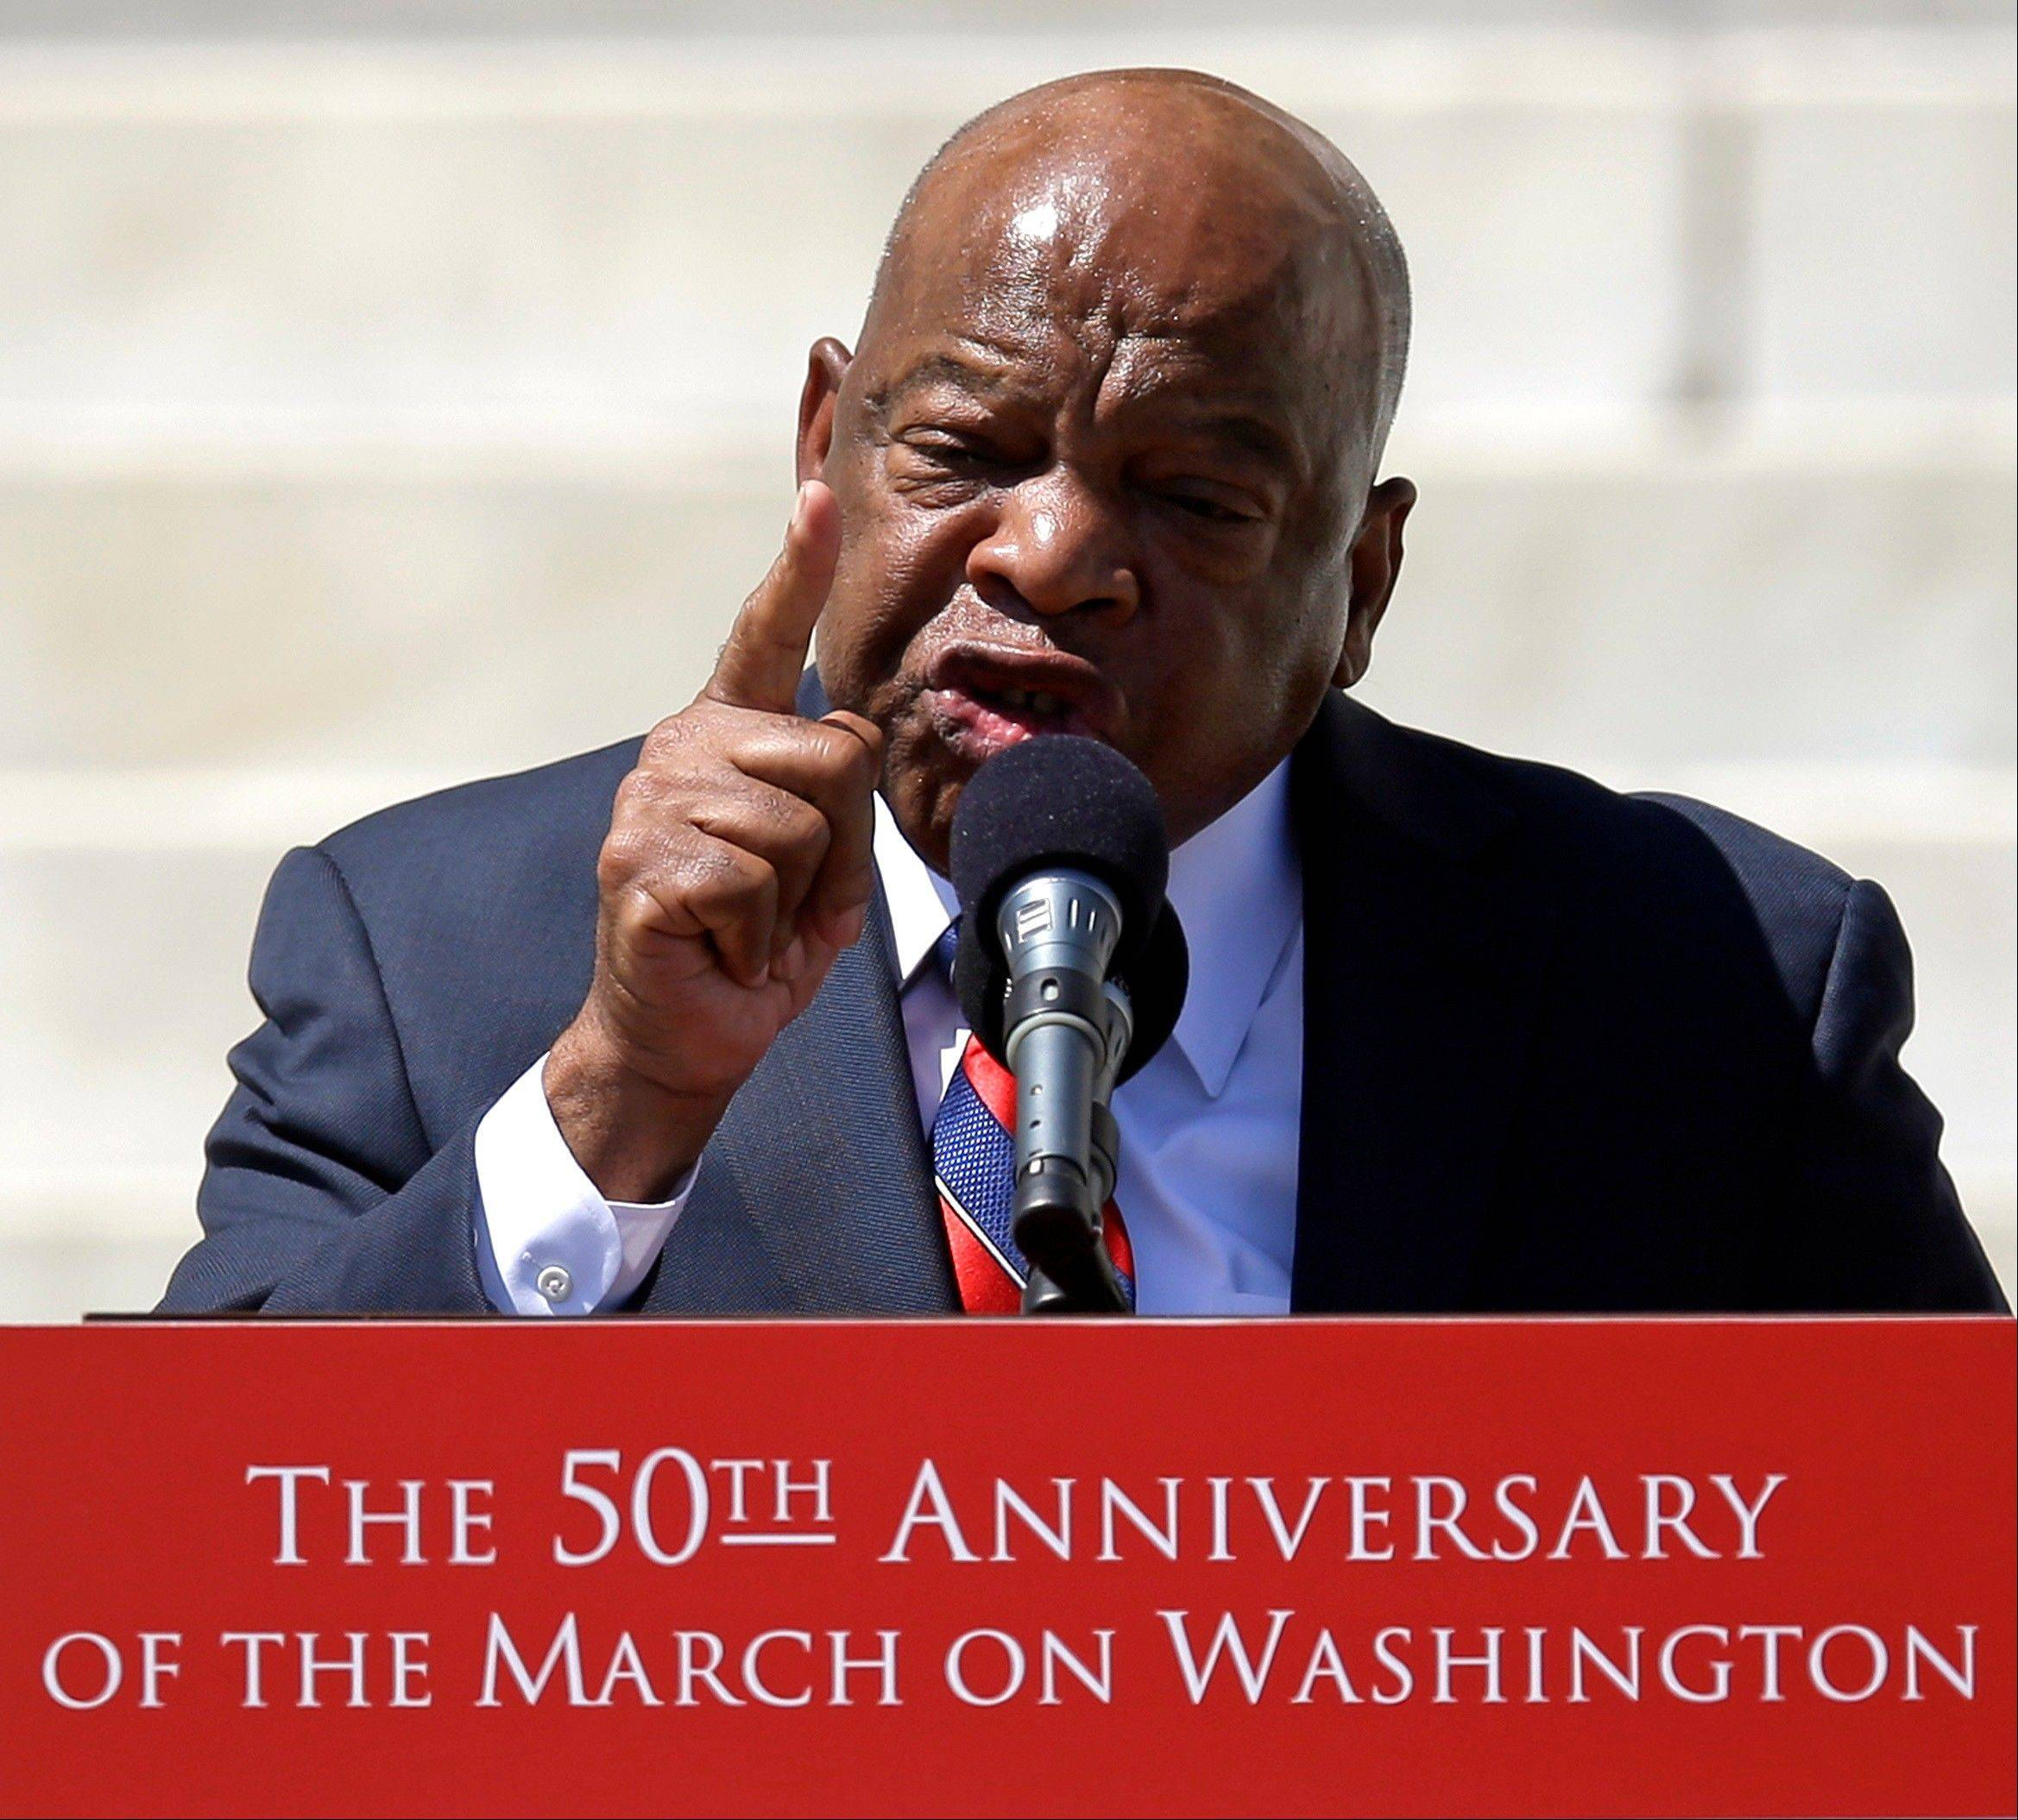 "Civil rights leader Rep. John Lewis, a Georgia Democrat, speaks at a rally to commemorate the 50th anniversary of the 1963 March on Washington on the steps of the Lincoln Memorial. Lewis marched in the front line with the Rev. Martin Luther King Jr. the day King gave his famous ""I Have a Dream"" speech in 1963."